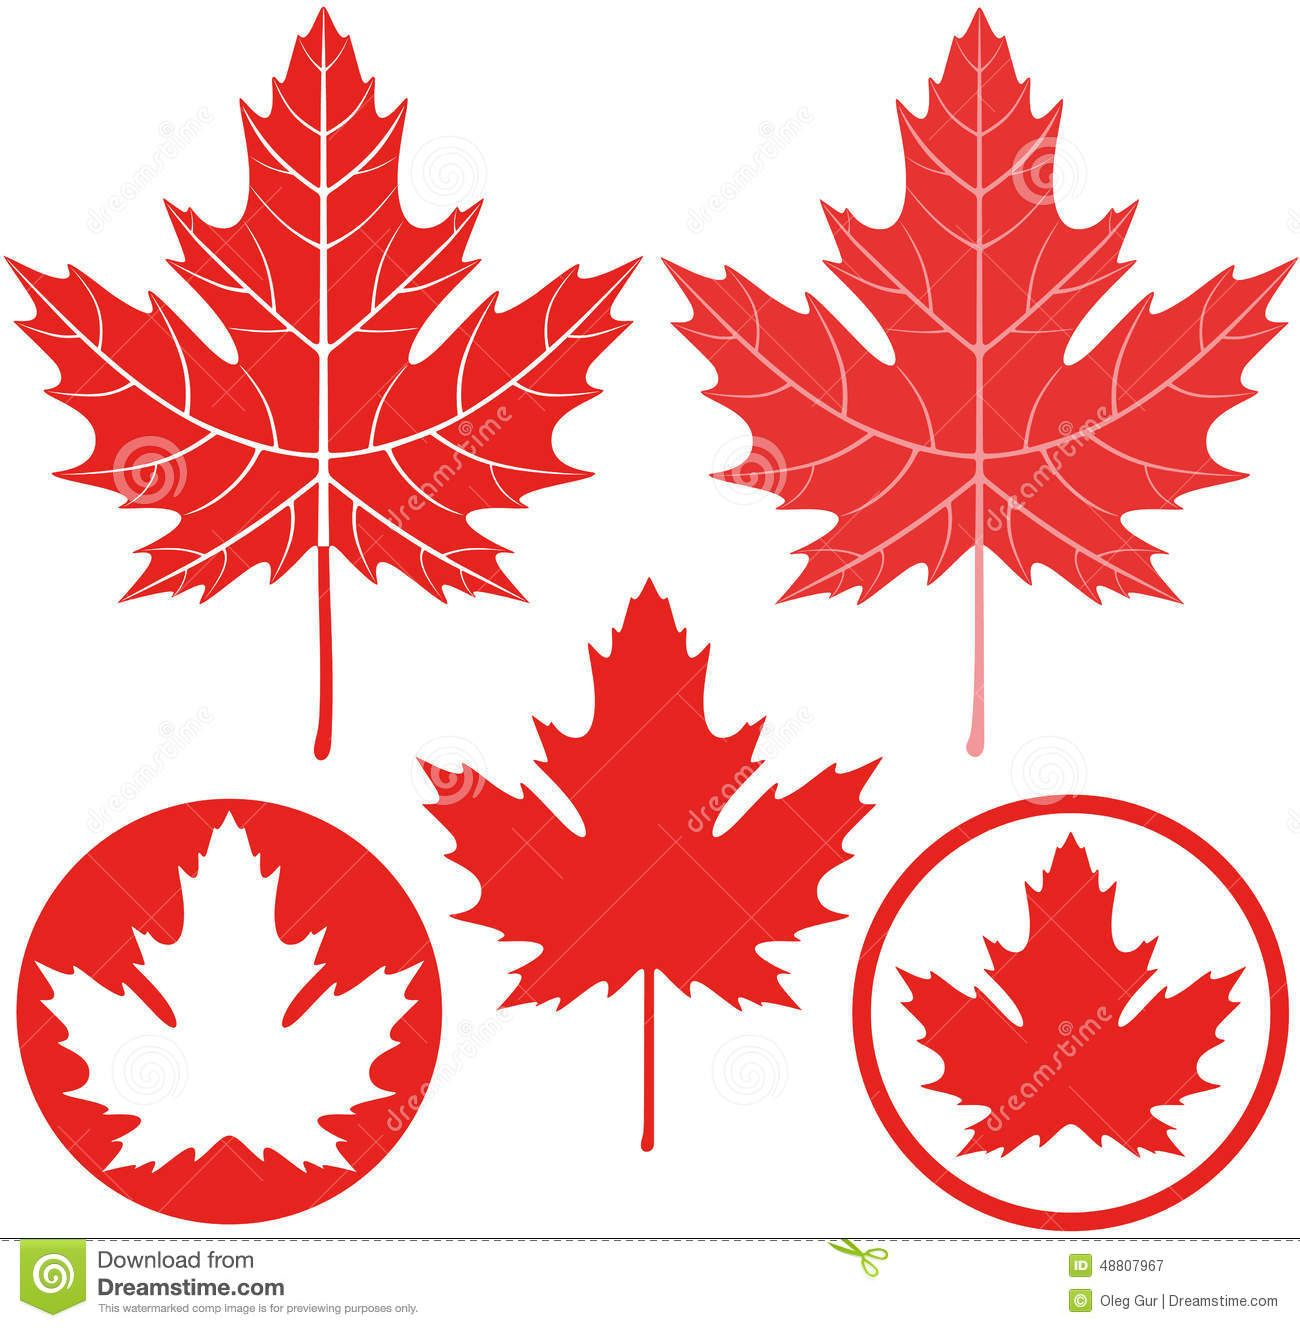 Maple Leaf Yahoo Search Results Yahoo Canada Image Search Results Leaf Illustration Free Vector Graphics Leaves Vector